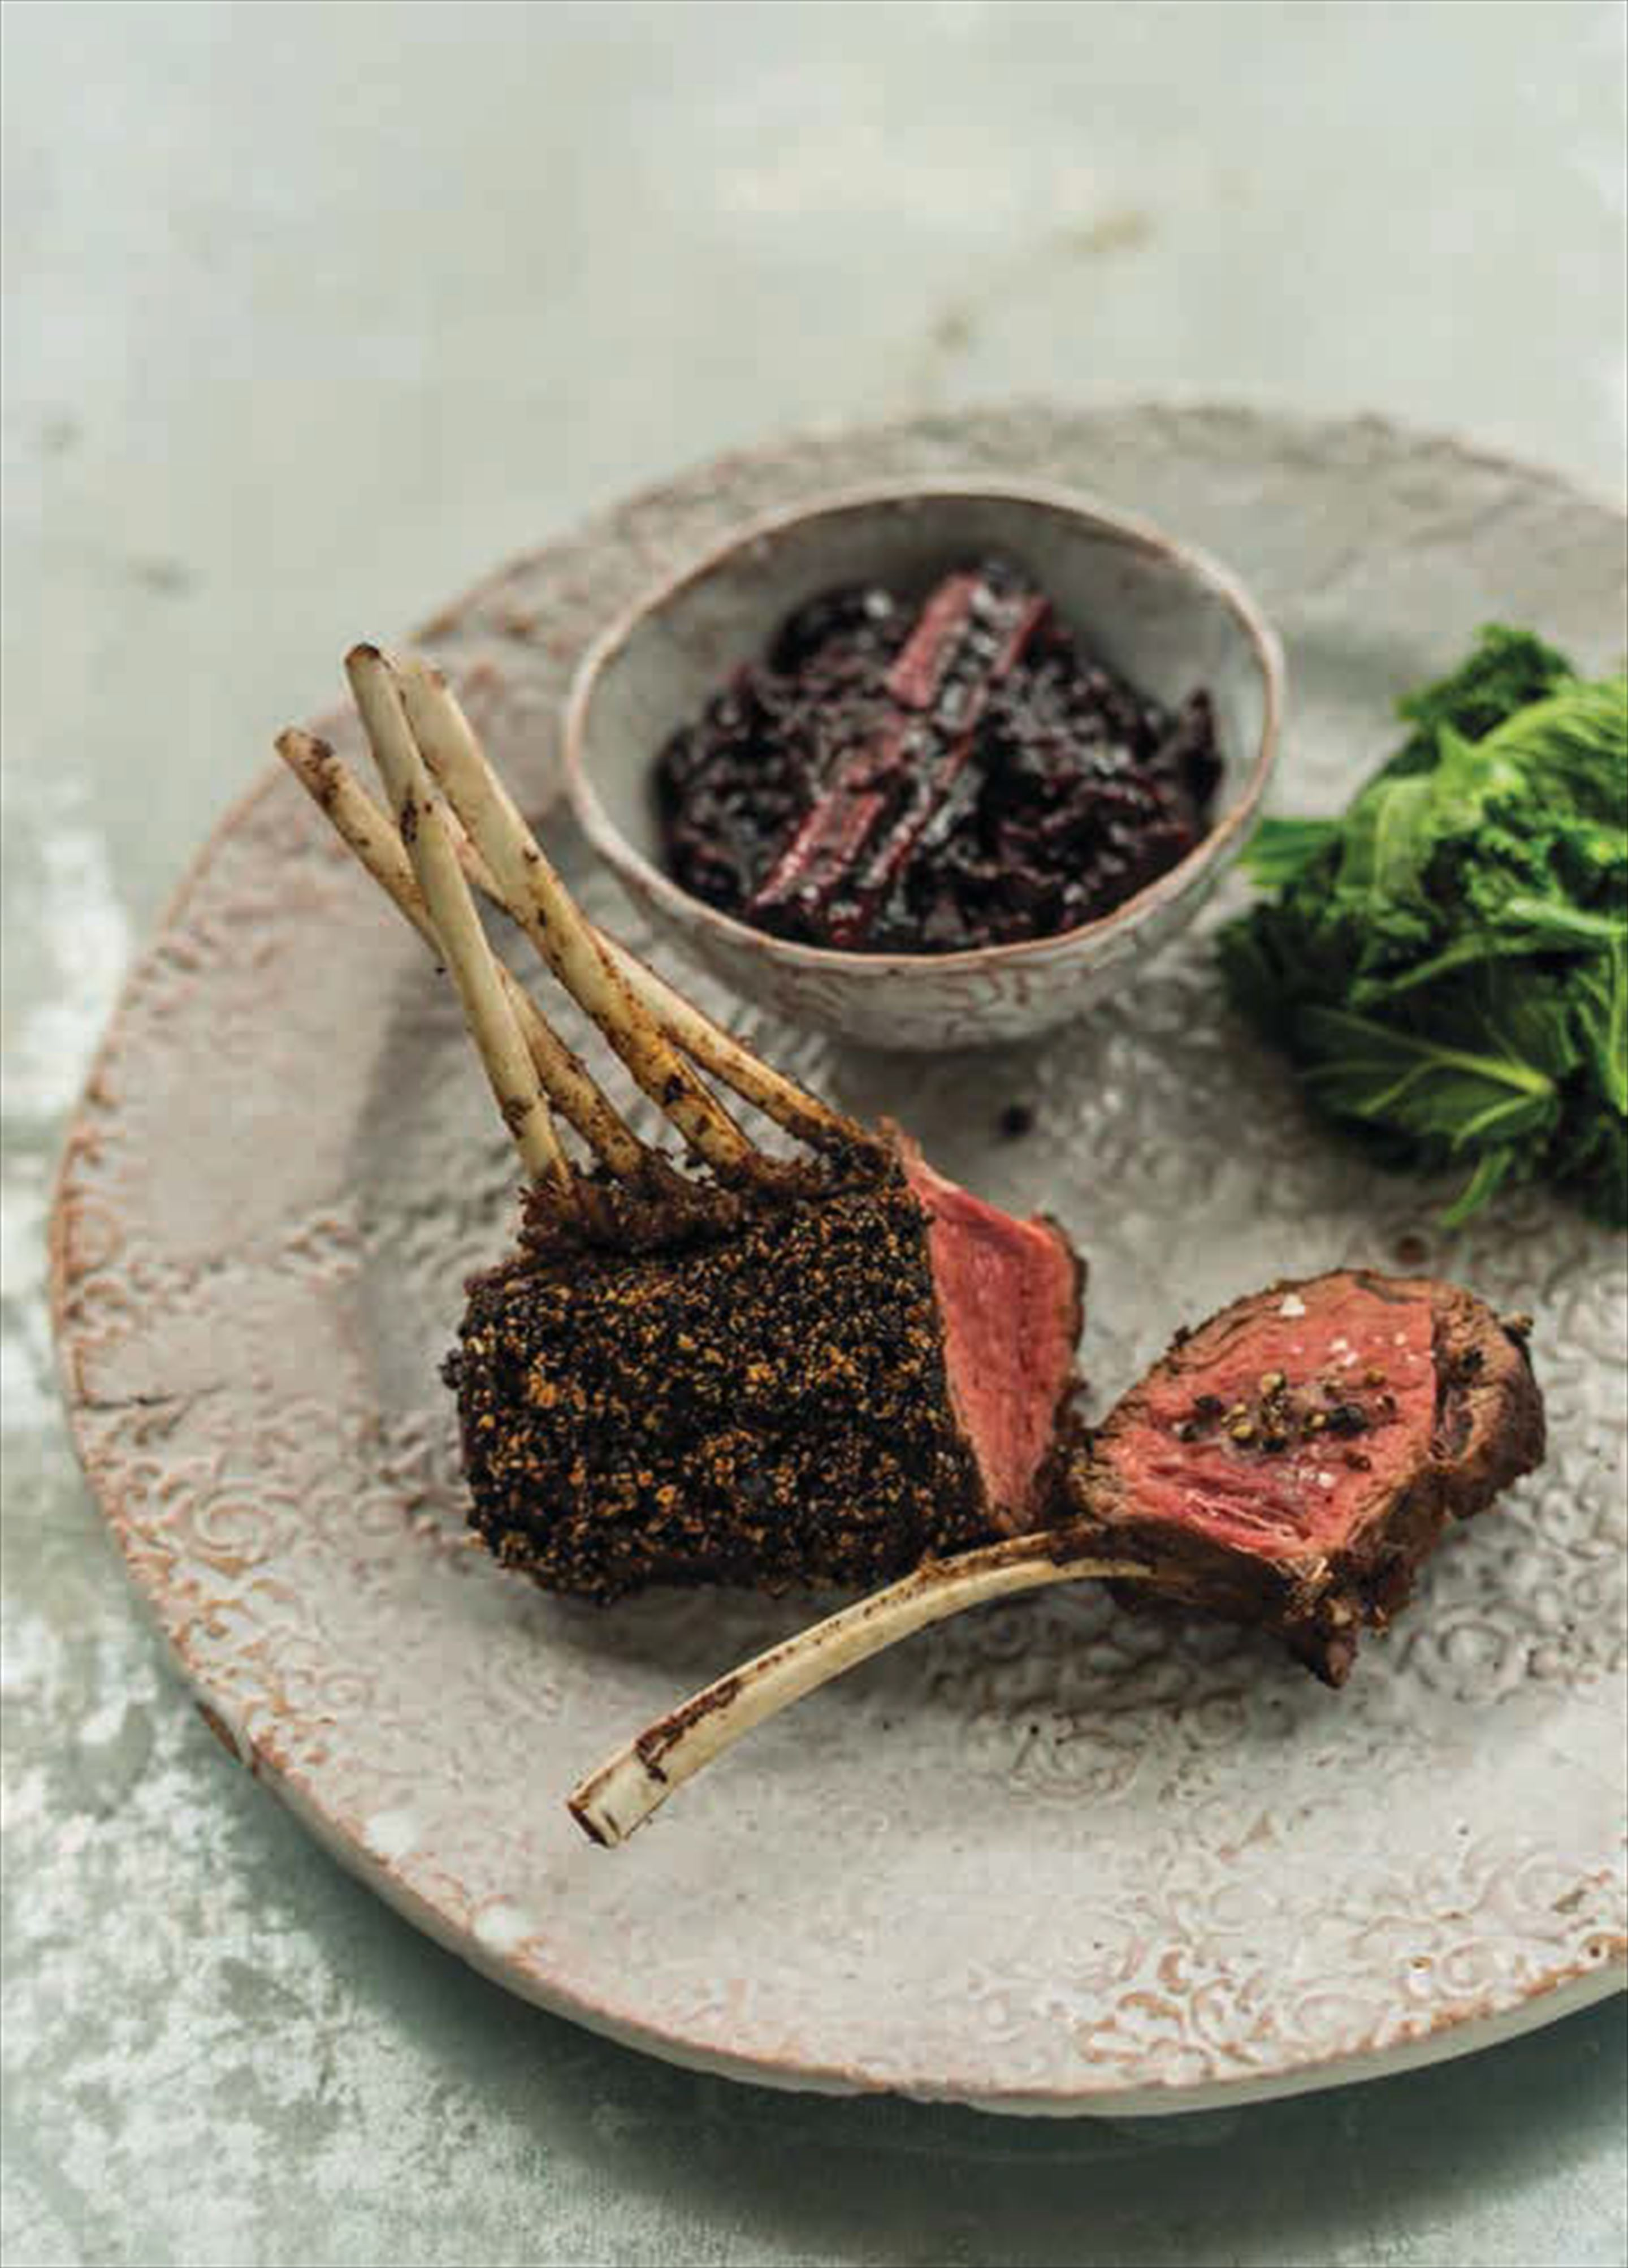 Roast rack of venison with a blueberry and juniper crust